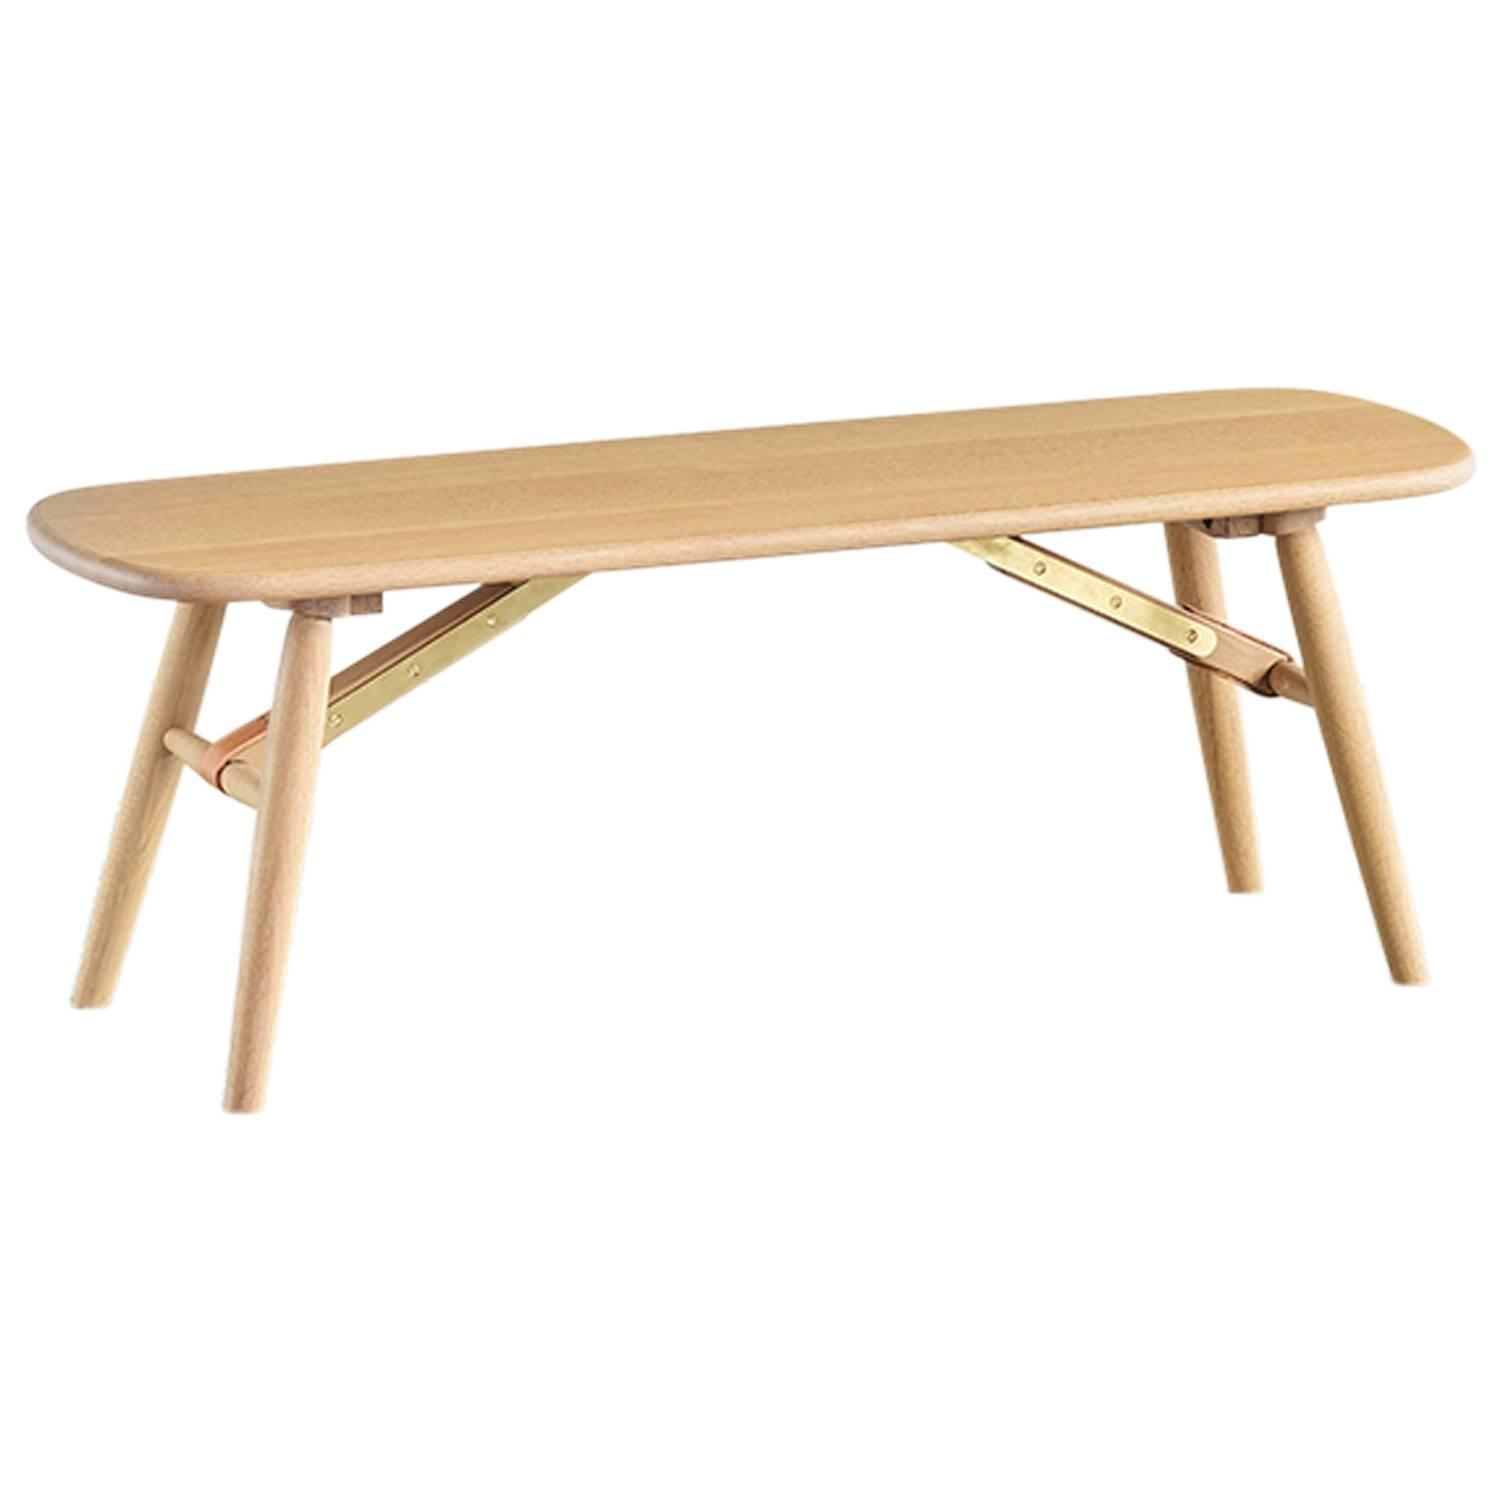 modern custom handcrafted oak bench from the nomad collection by